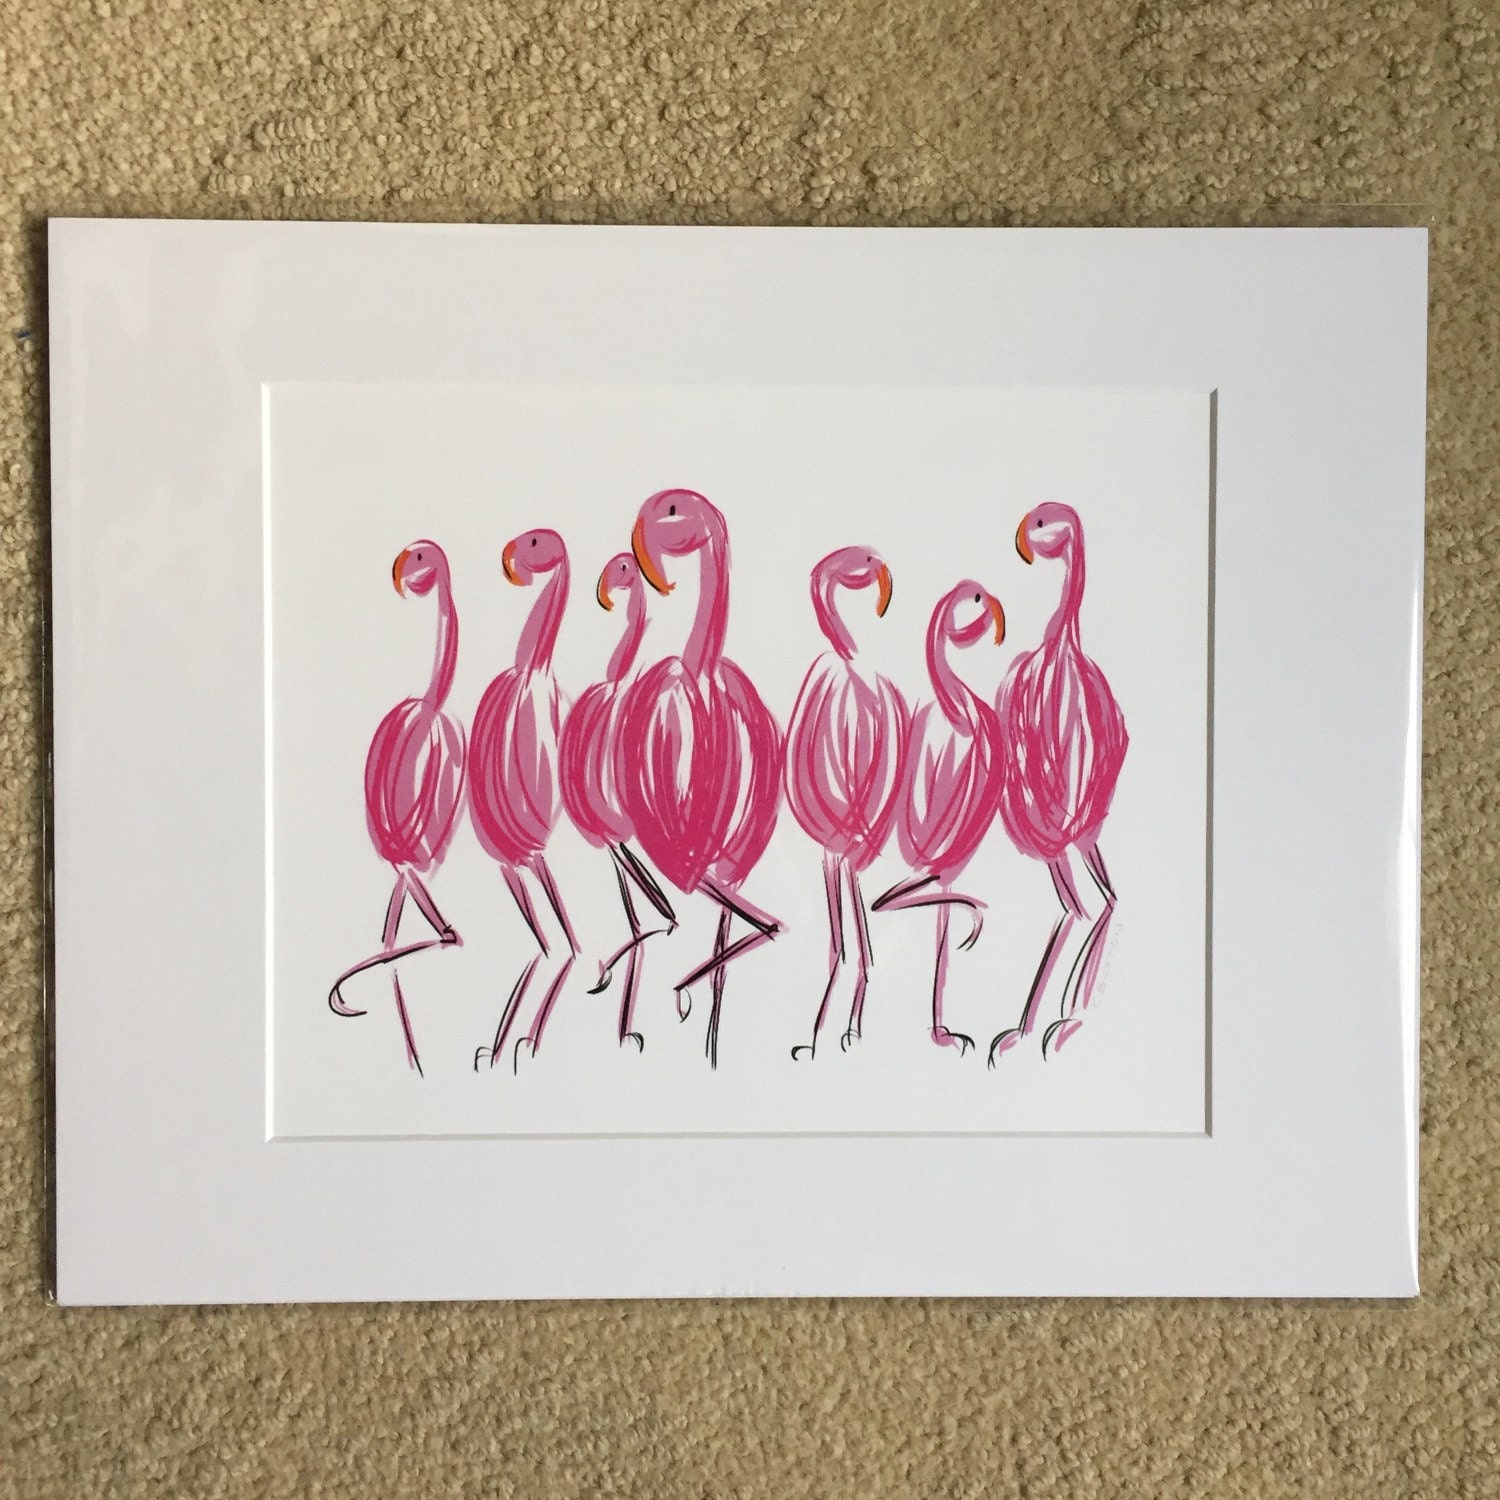 Prints matted and ready to be framed in a standard 11 x 14 frame ...